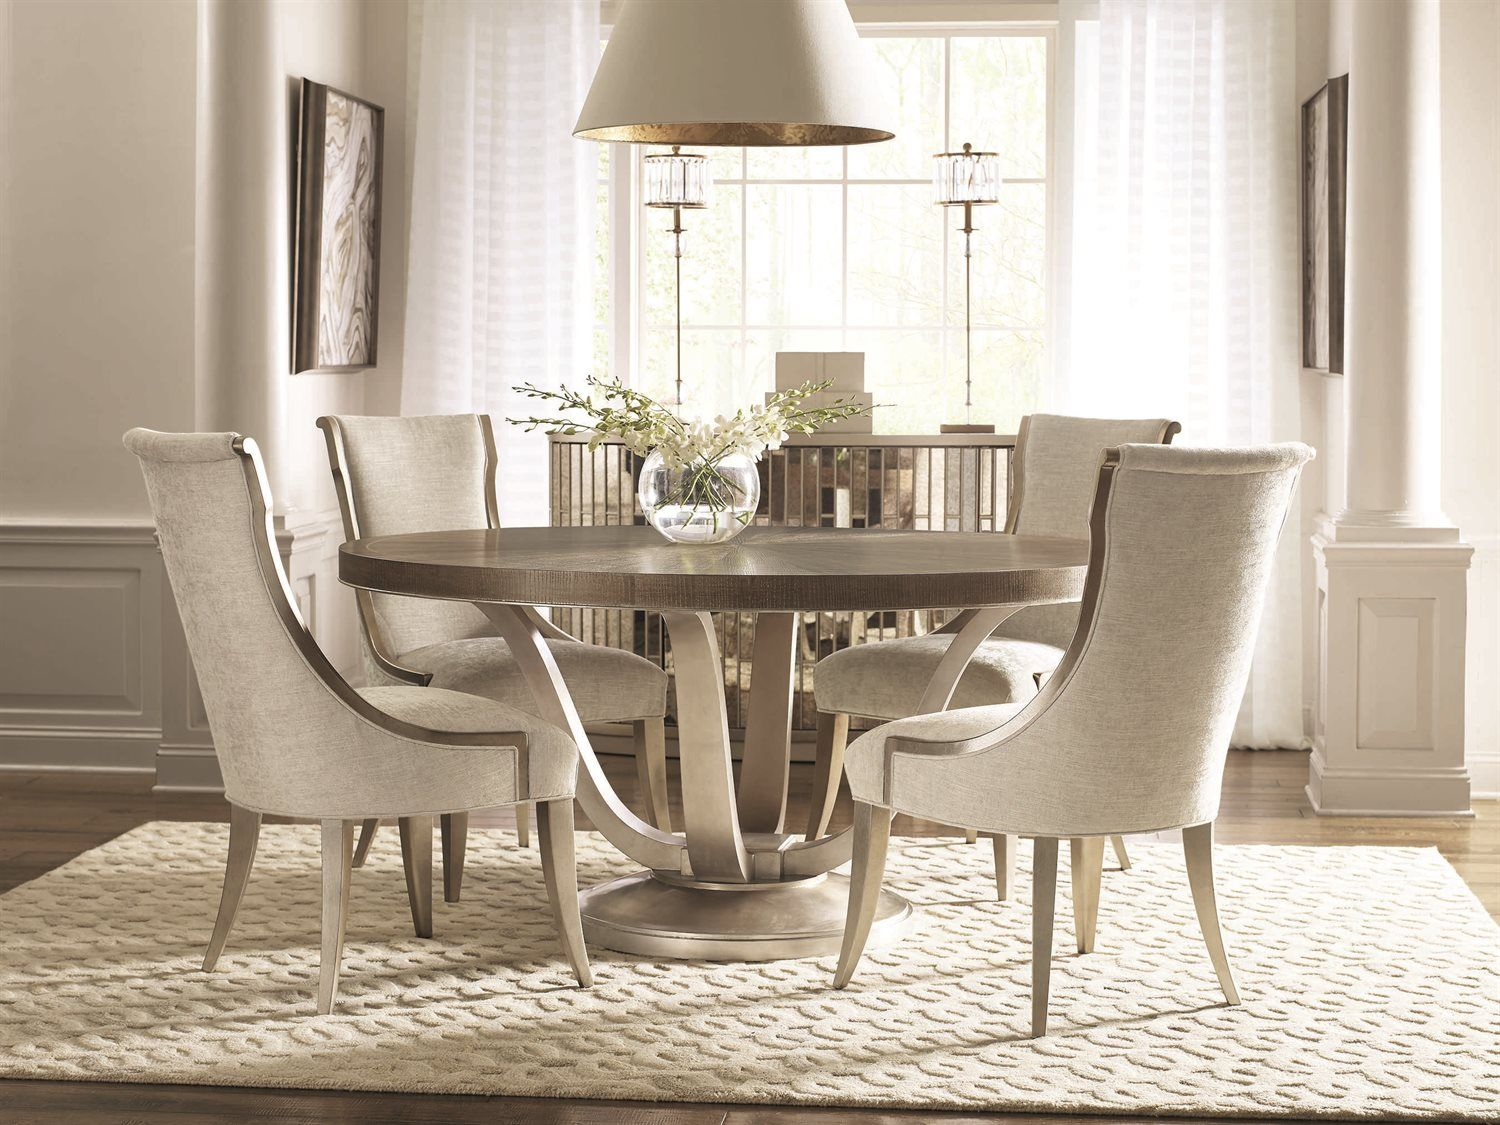 Caracole Compositions Avondale Dining Room Set